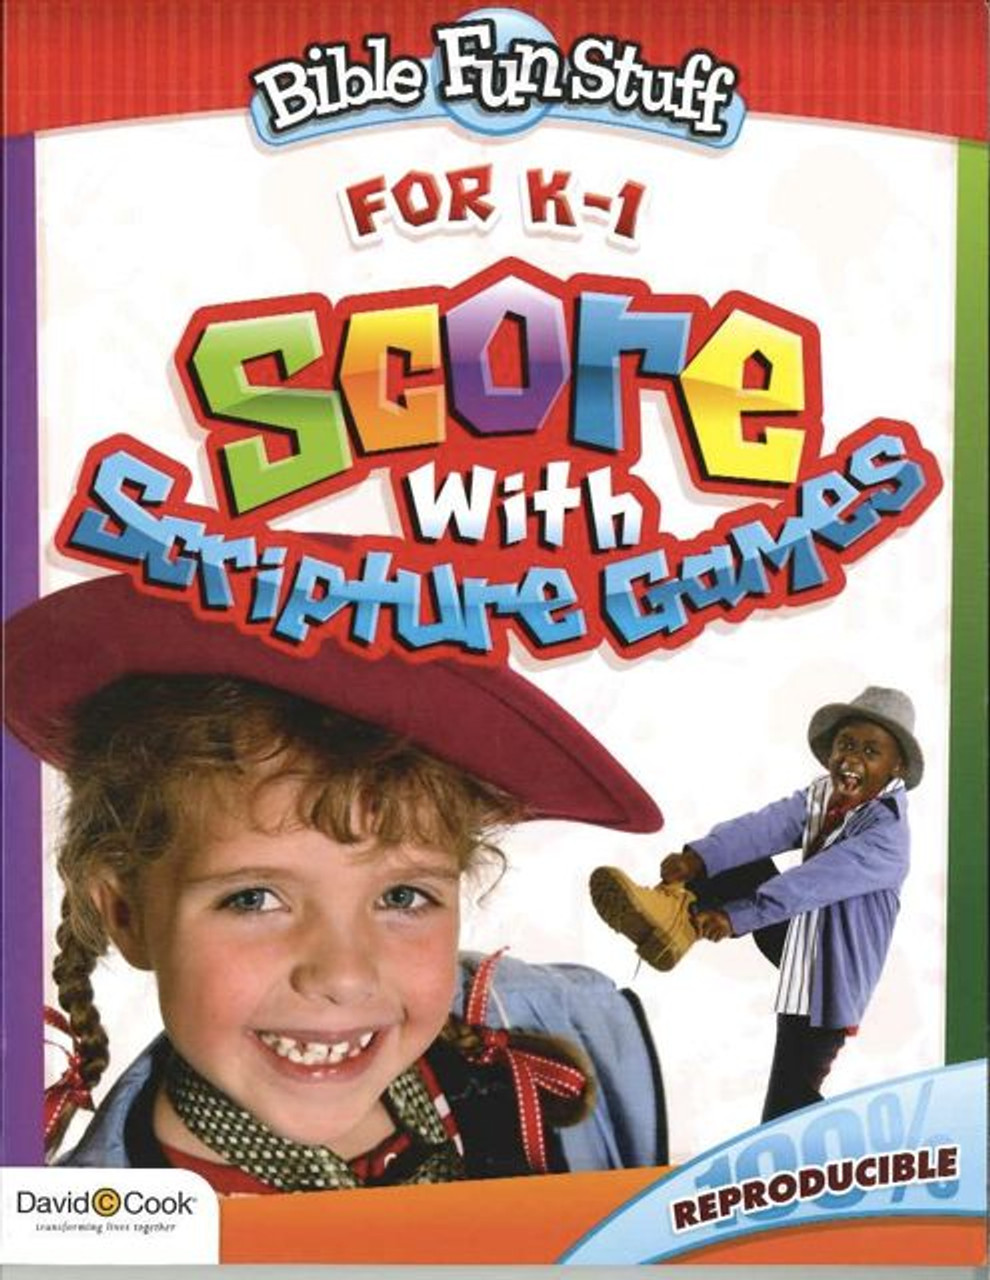 Bible Fun Stuff For K -1 Score With Scripture Games